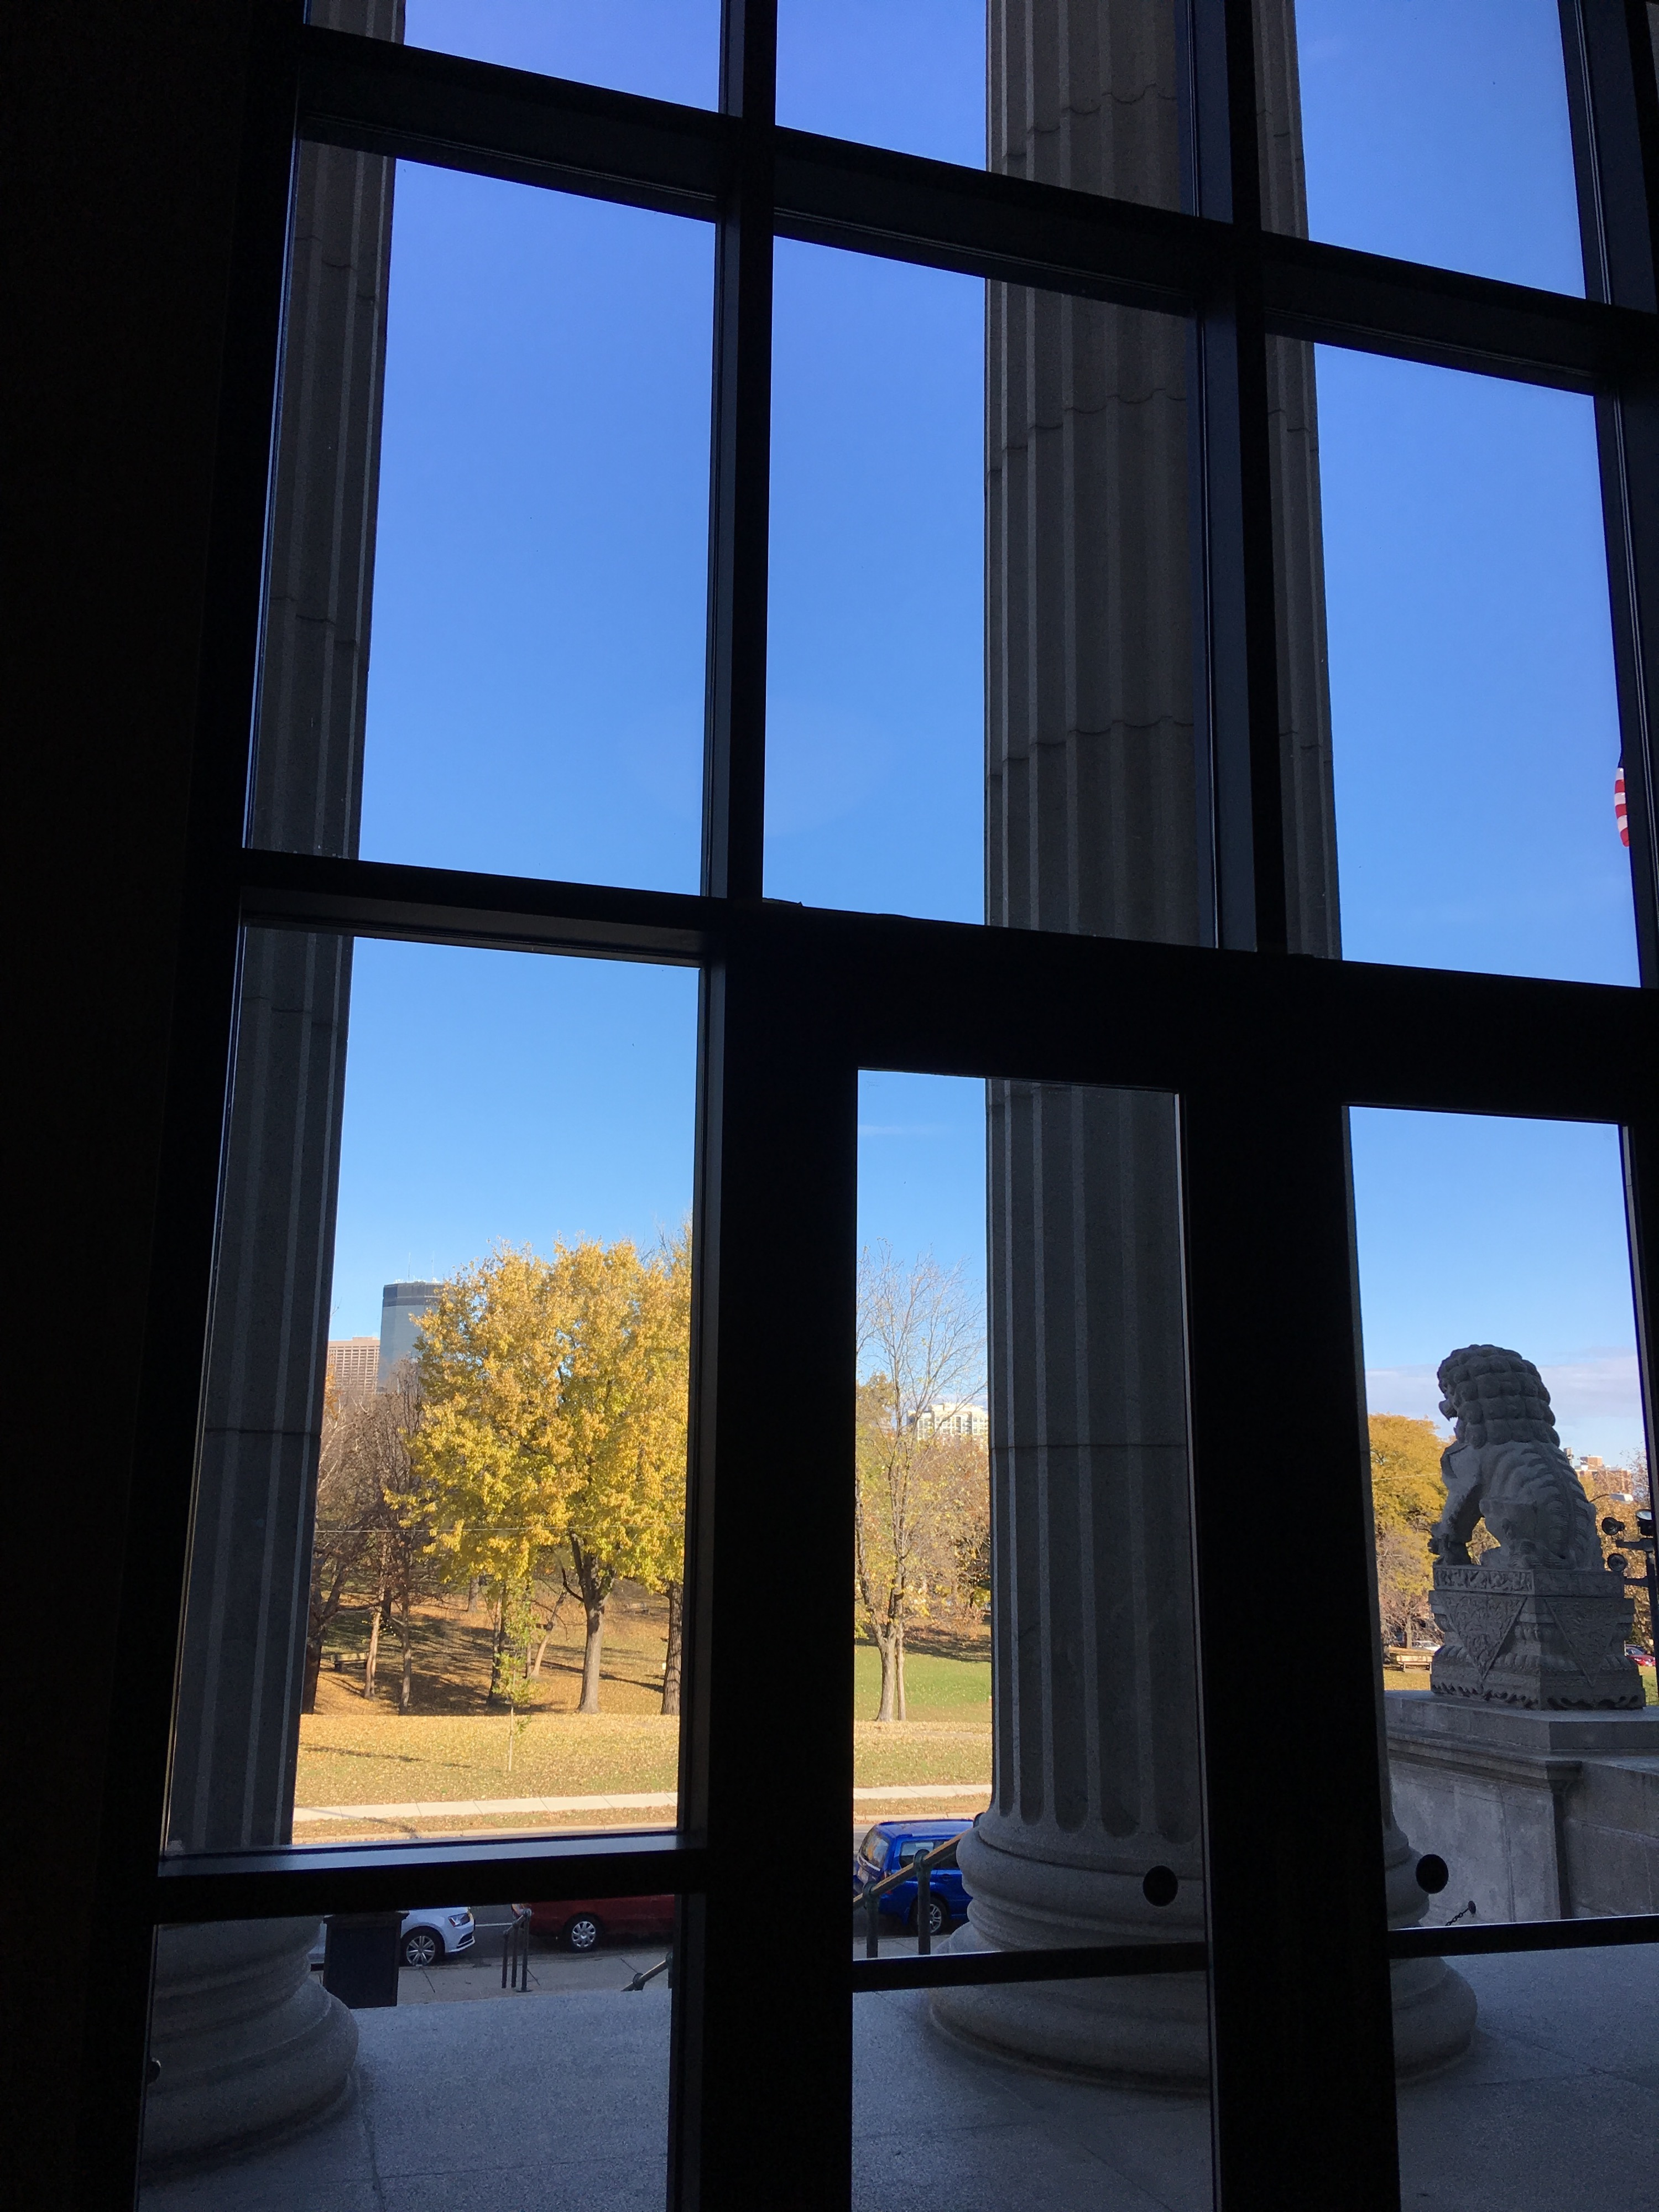 View out the front doors showing a pillar and a stone lion, the Minneapolis skyline partly hidden by autumn trees in the park across the street, all under a high, clear blue sky